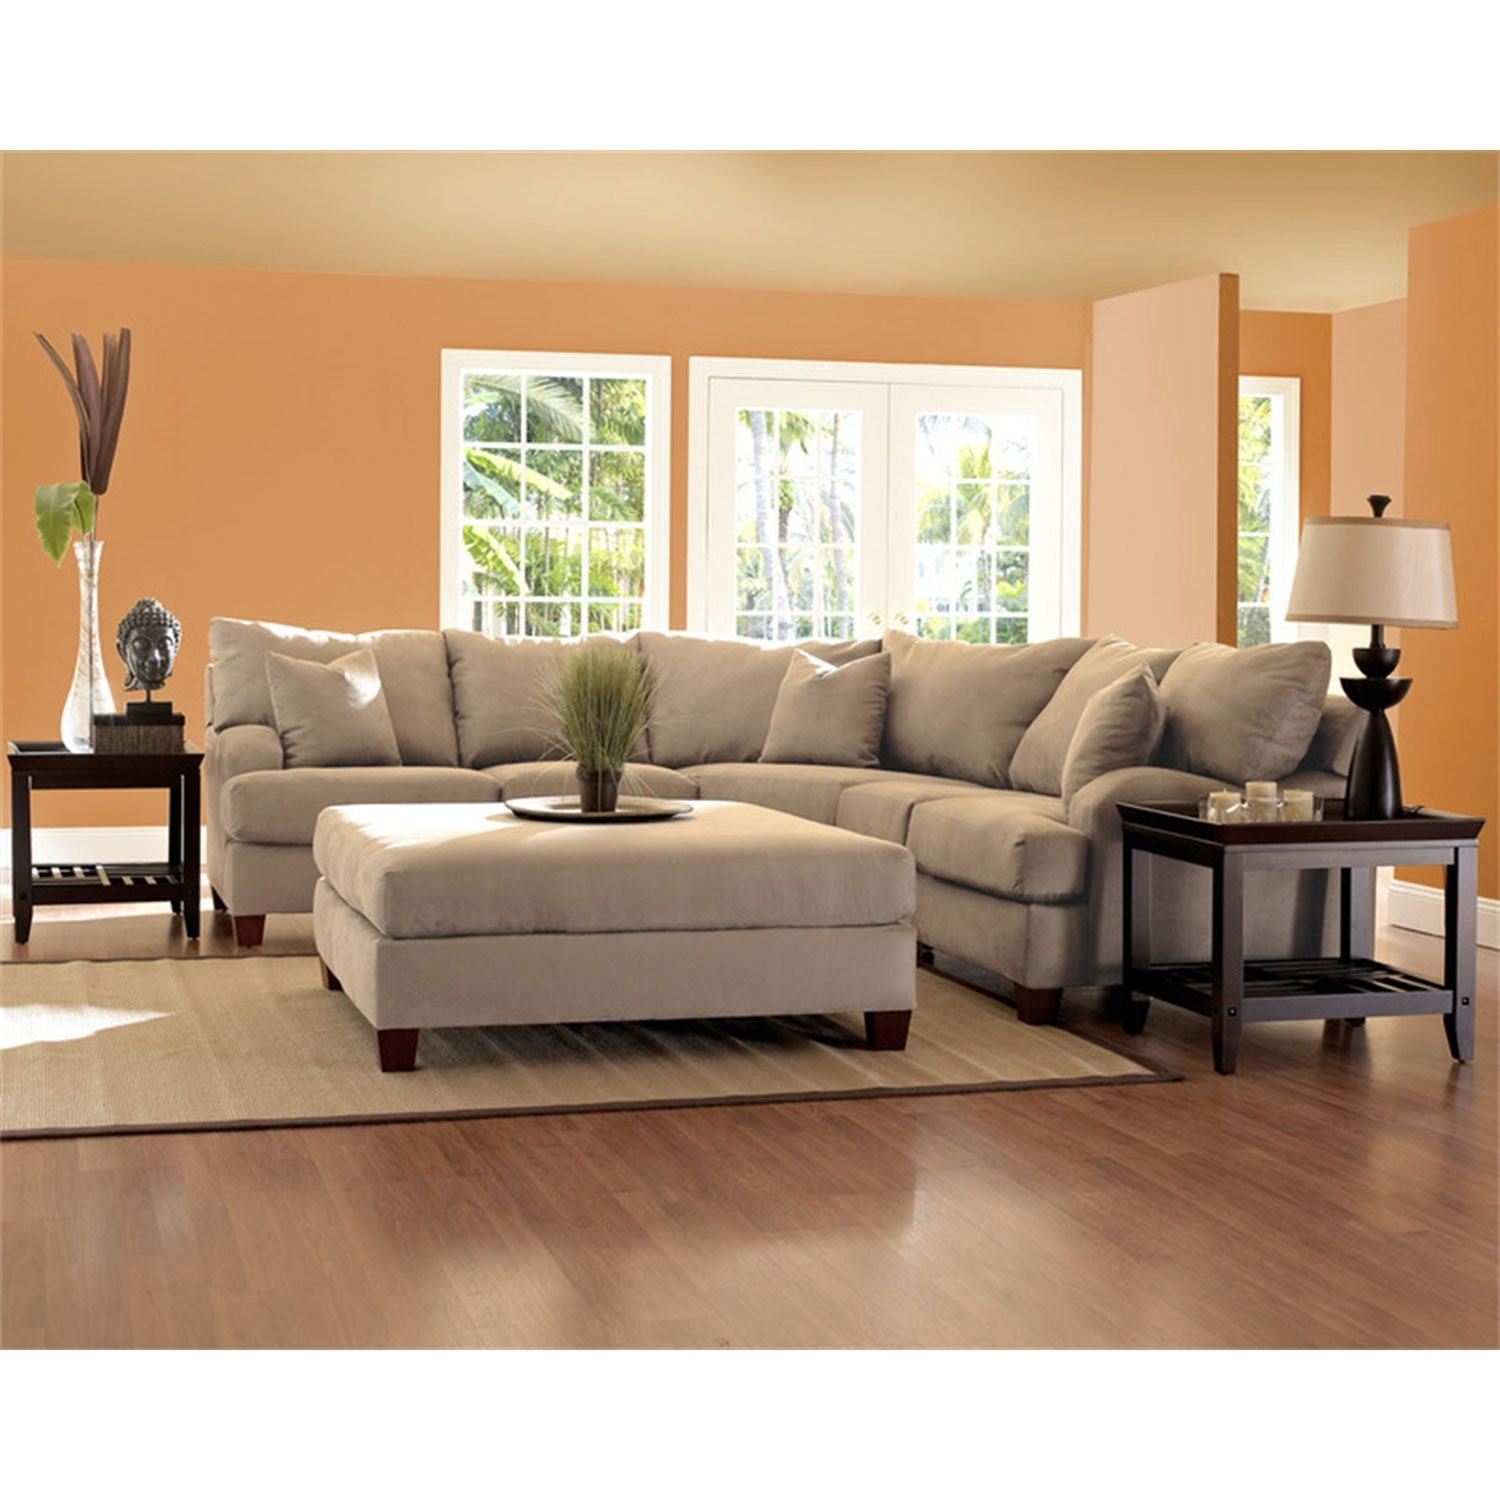 Canyon Beige Sectional Sectional Sofas Sofas & Sectionals Living With Beige Sectional Sofas (View 10 of 10)